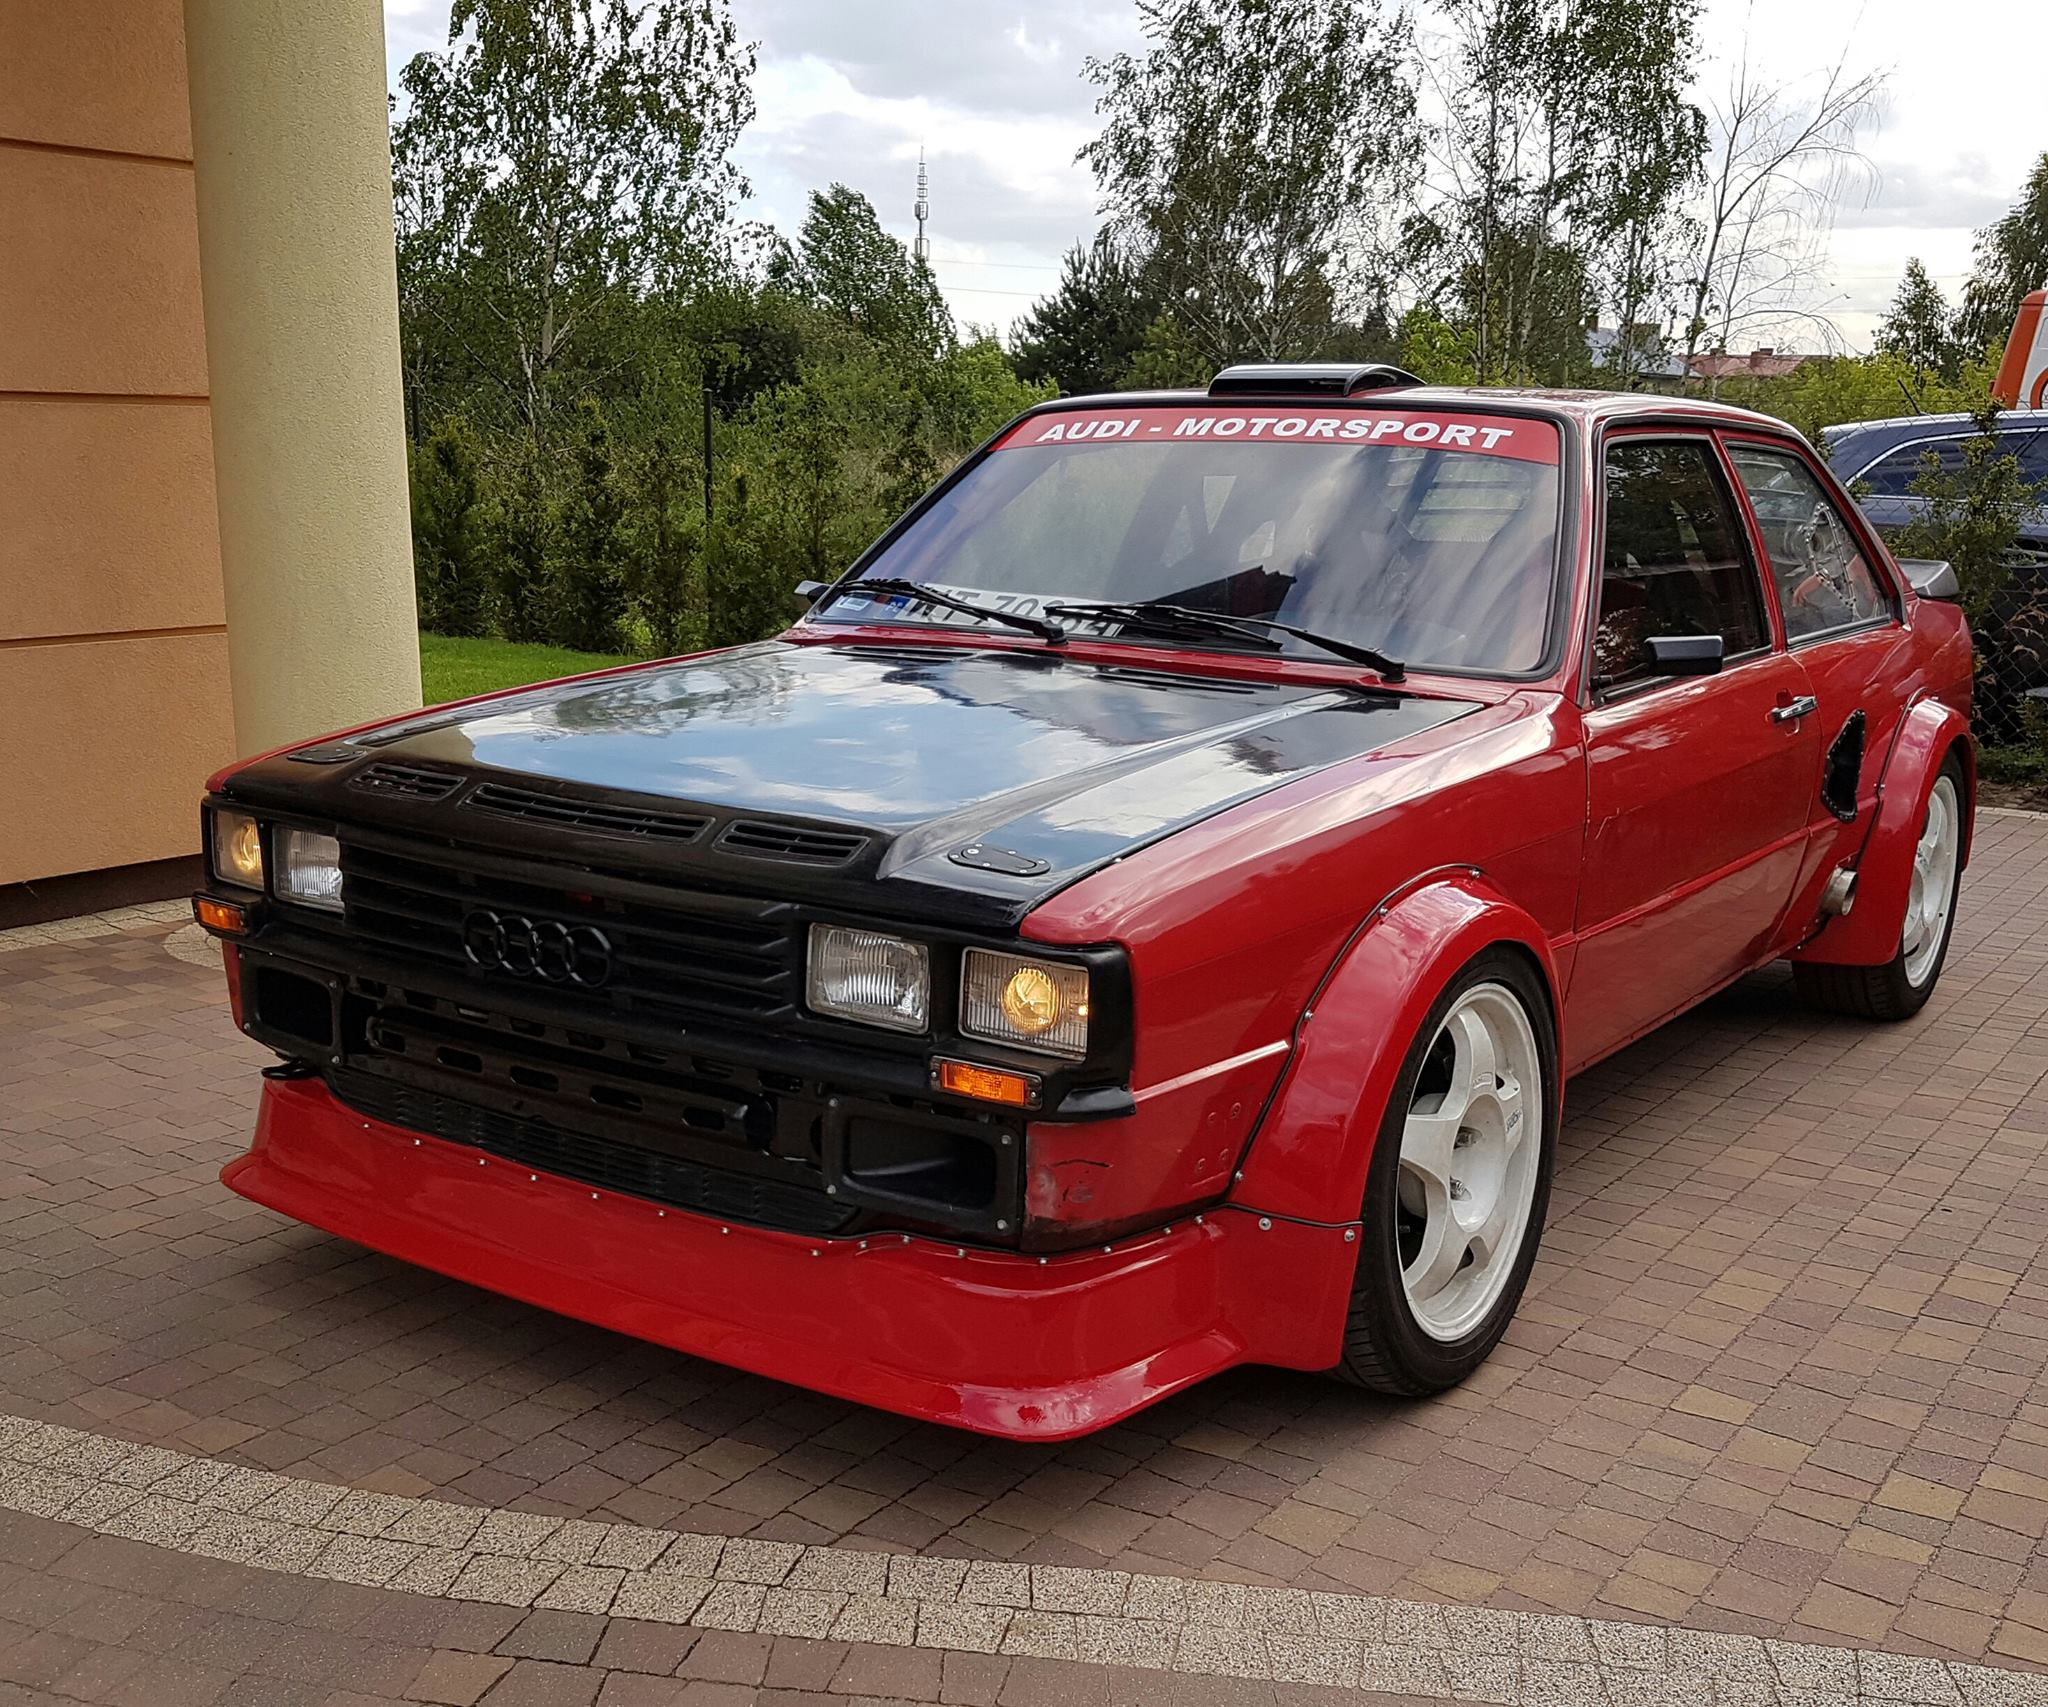 Audi 80 B2 with a turbo VR6